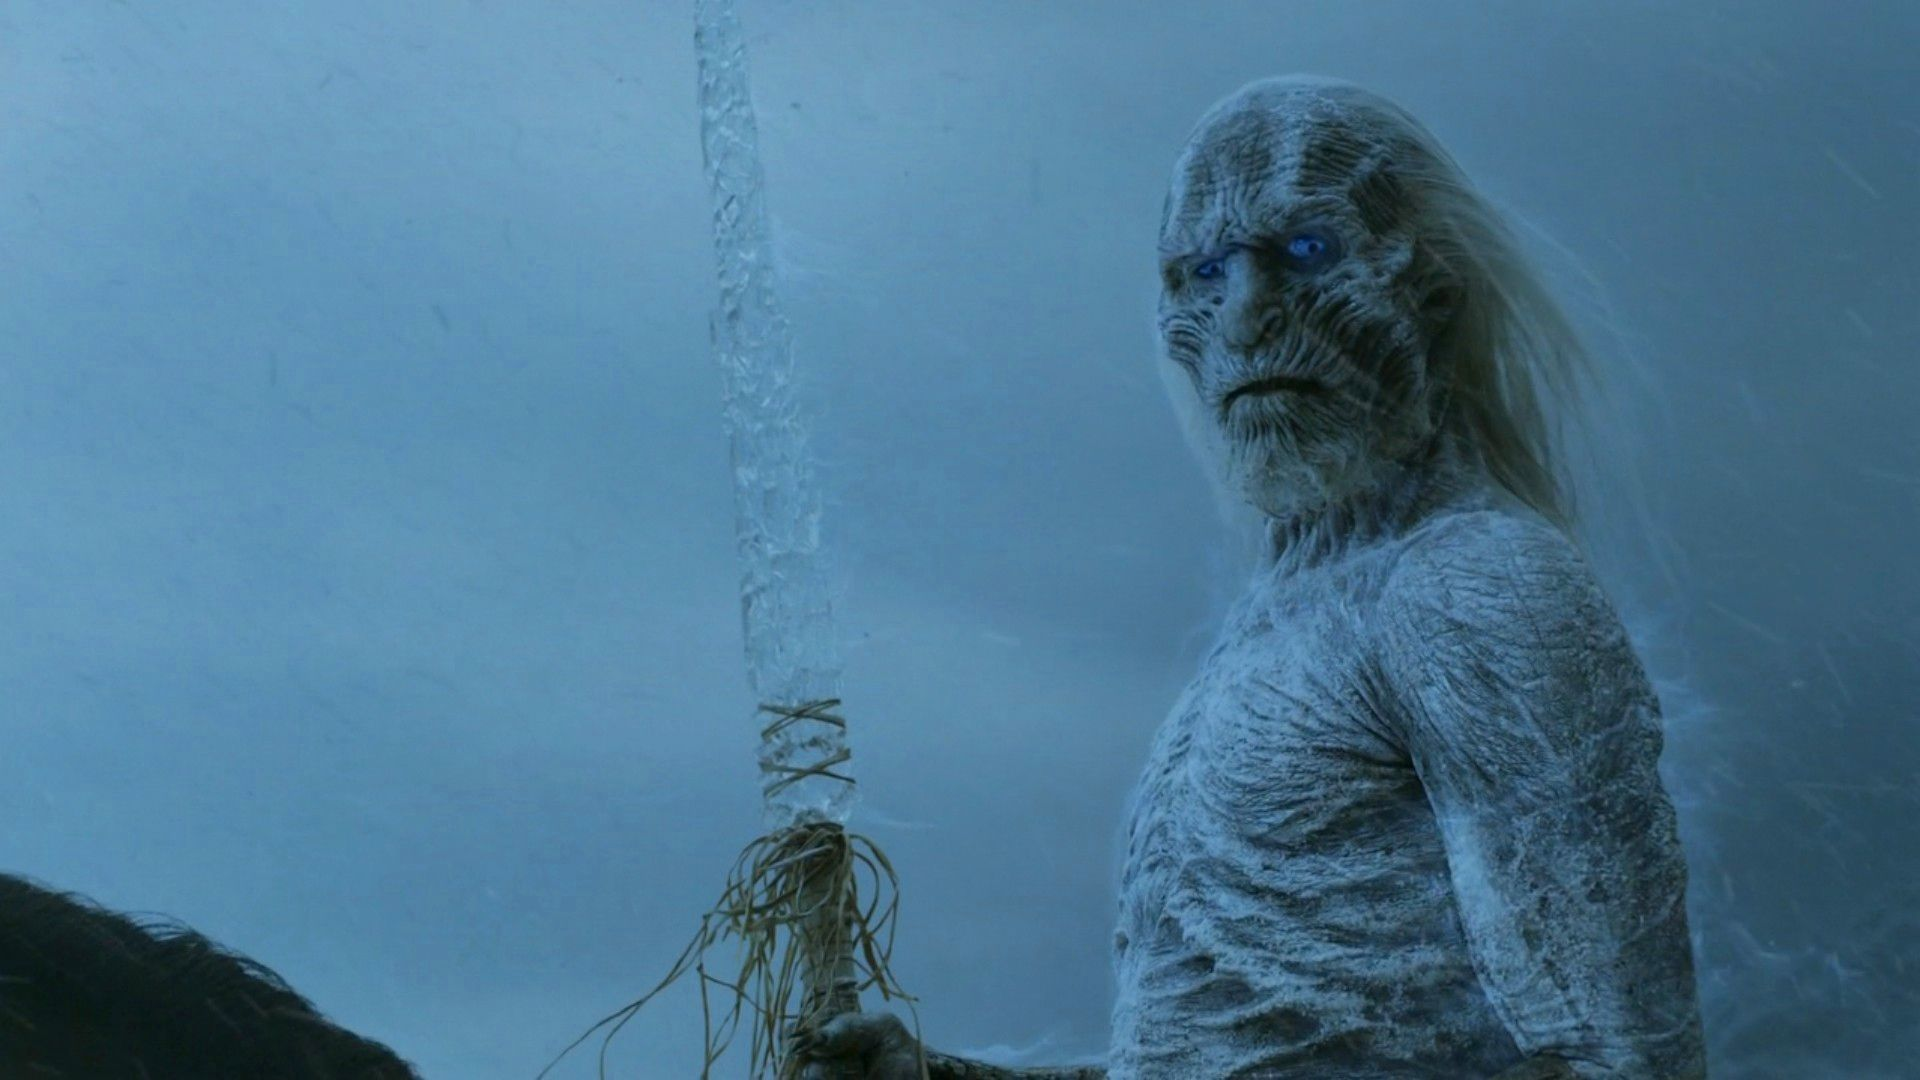 Game Of Thrones S8 Could Feature Ice Spiders Based On Tease From